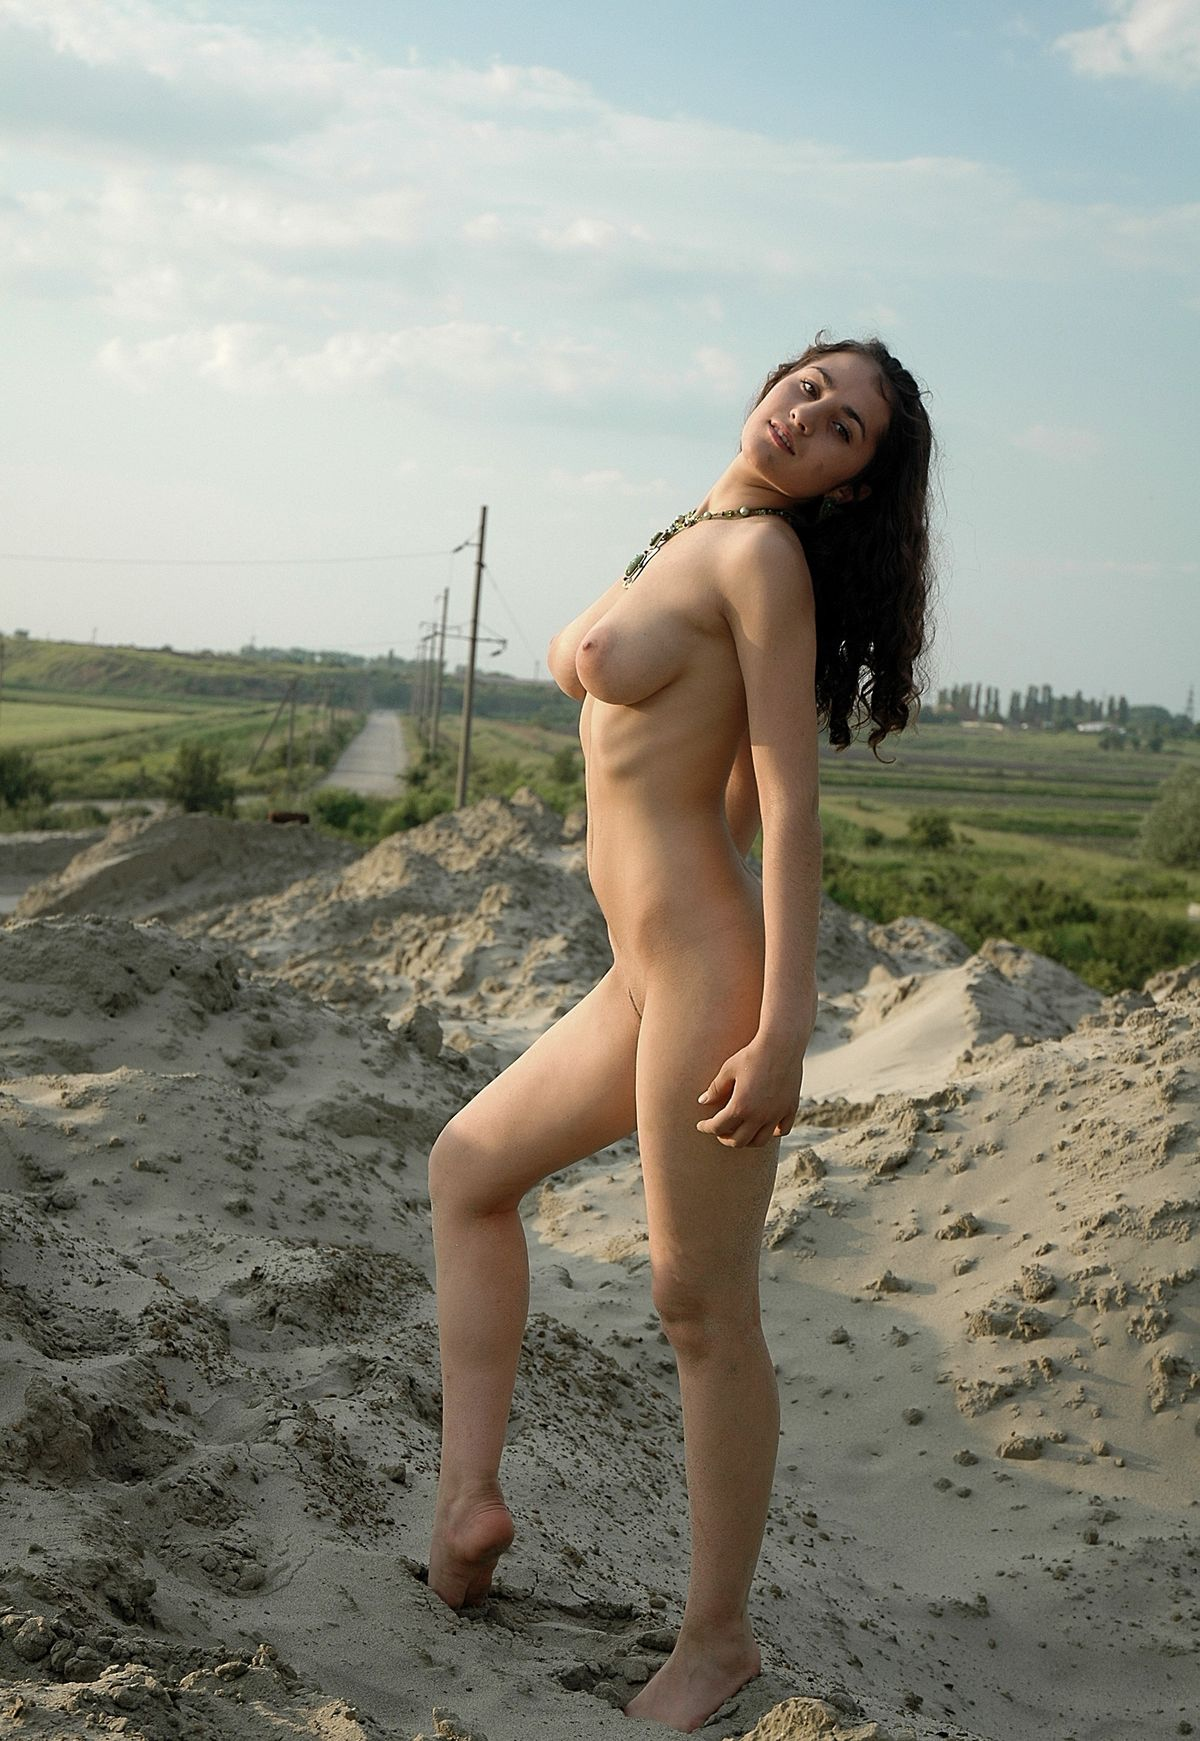 Miyabi ozawa anal uncensored free videos watch download XXX